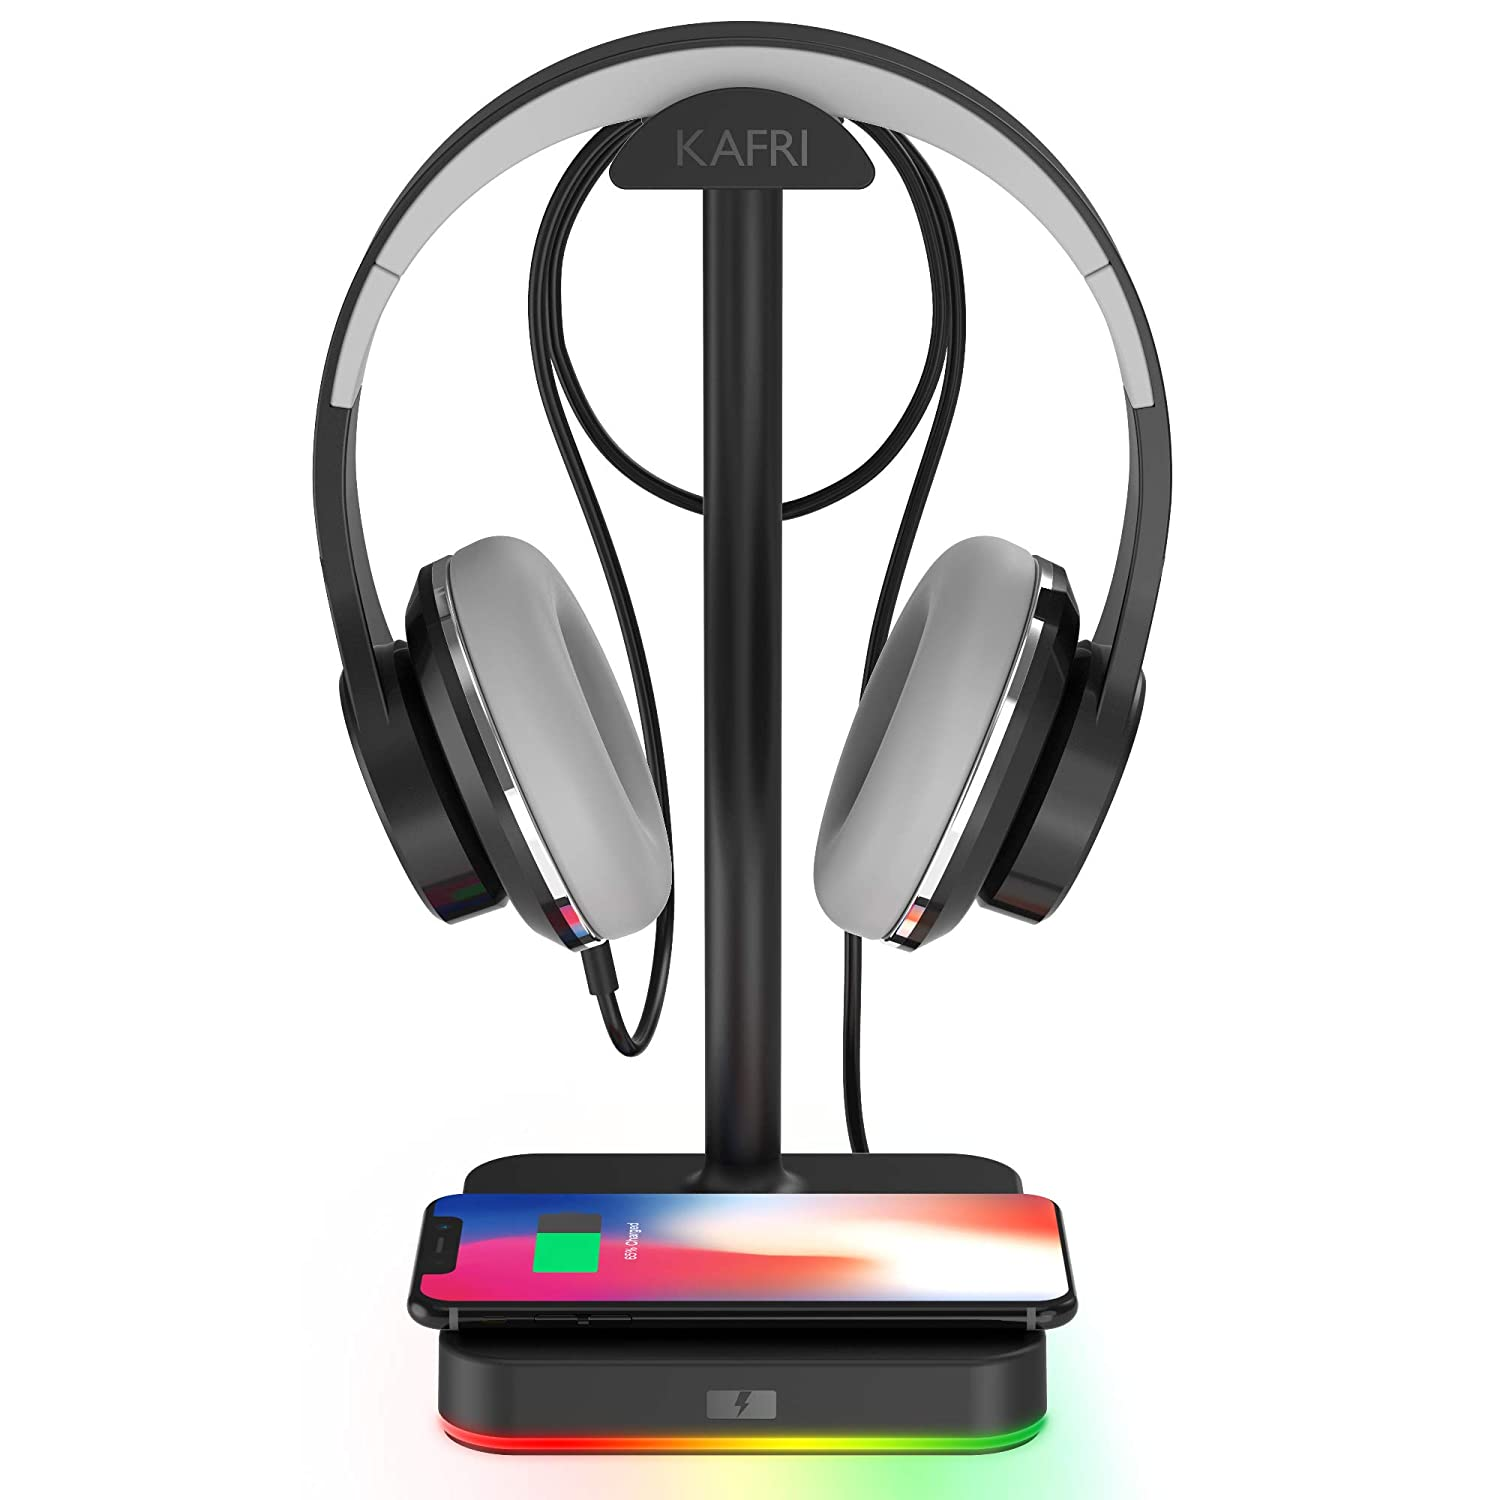 RGB Headphone Stand with Wireless Charger KAFRI Desk Gaming Headset Holder Hanger Rack with 10W/7.5W Fast Charge QI Wireless Charging Pad - Suitable for Gamer Desktop Table Game Earphone Accessories